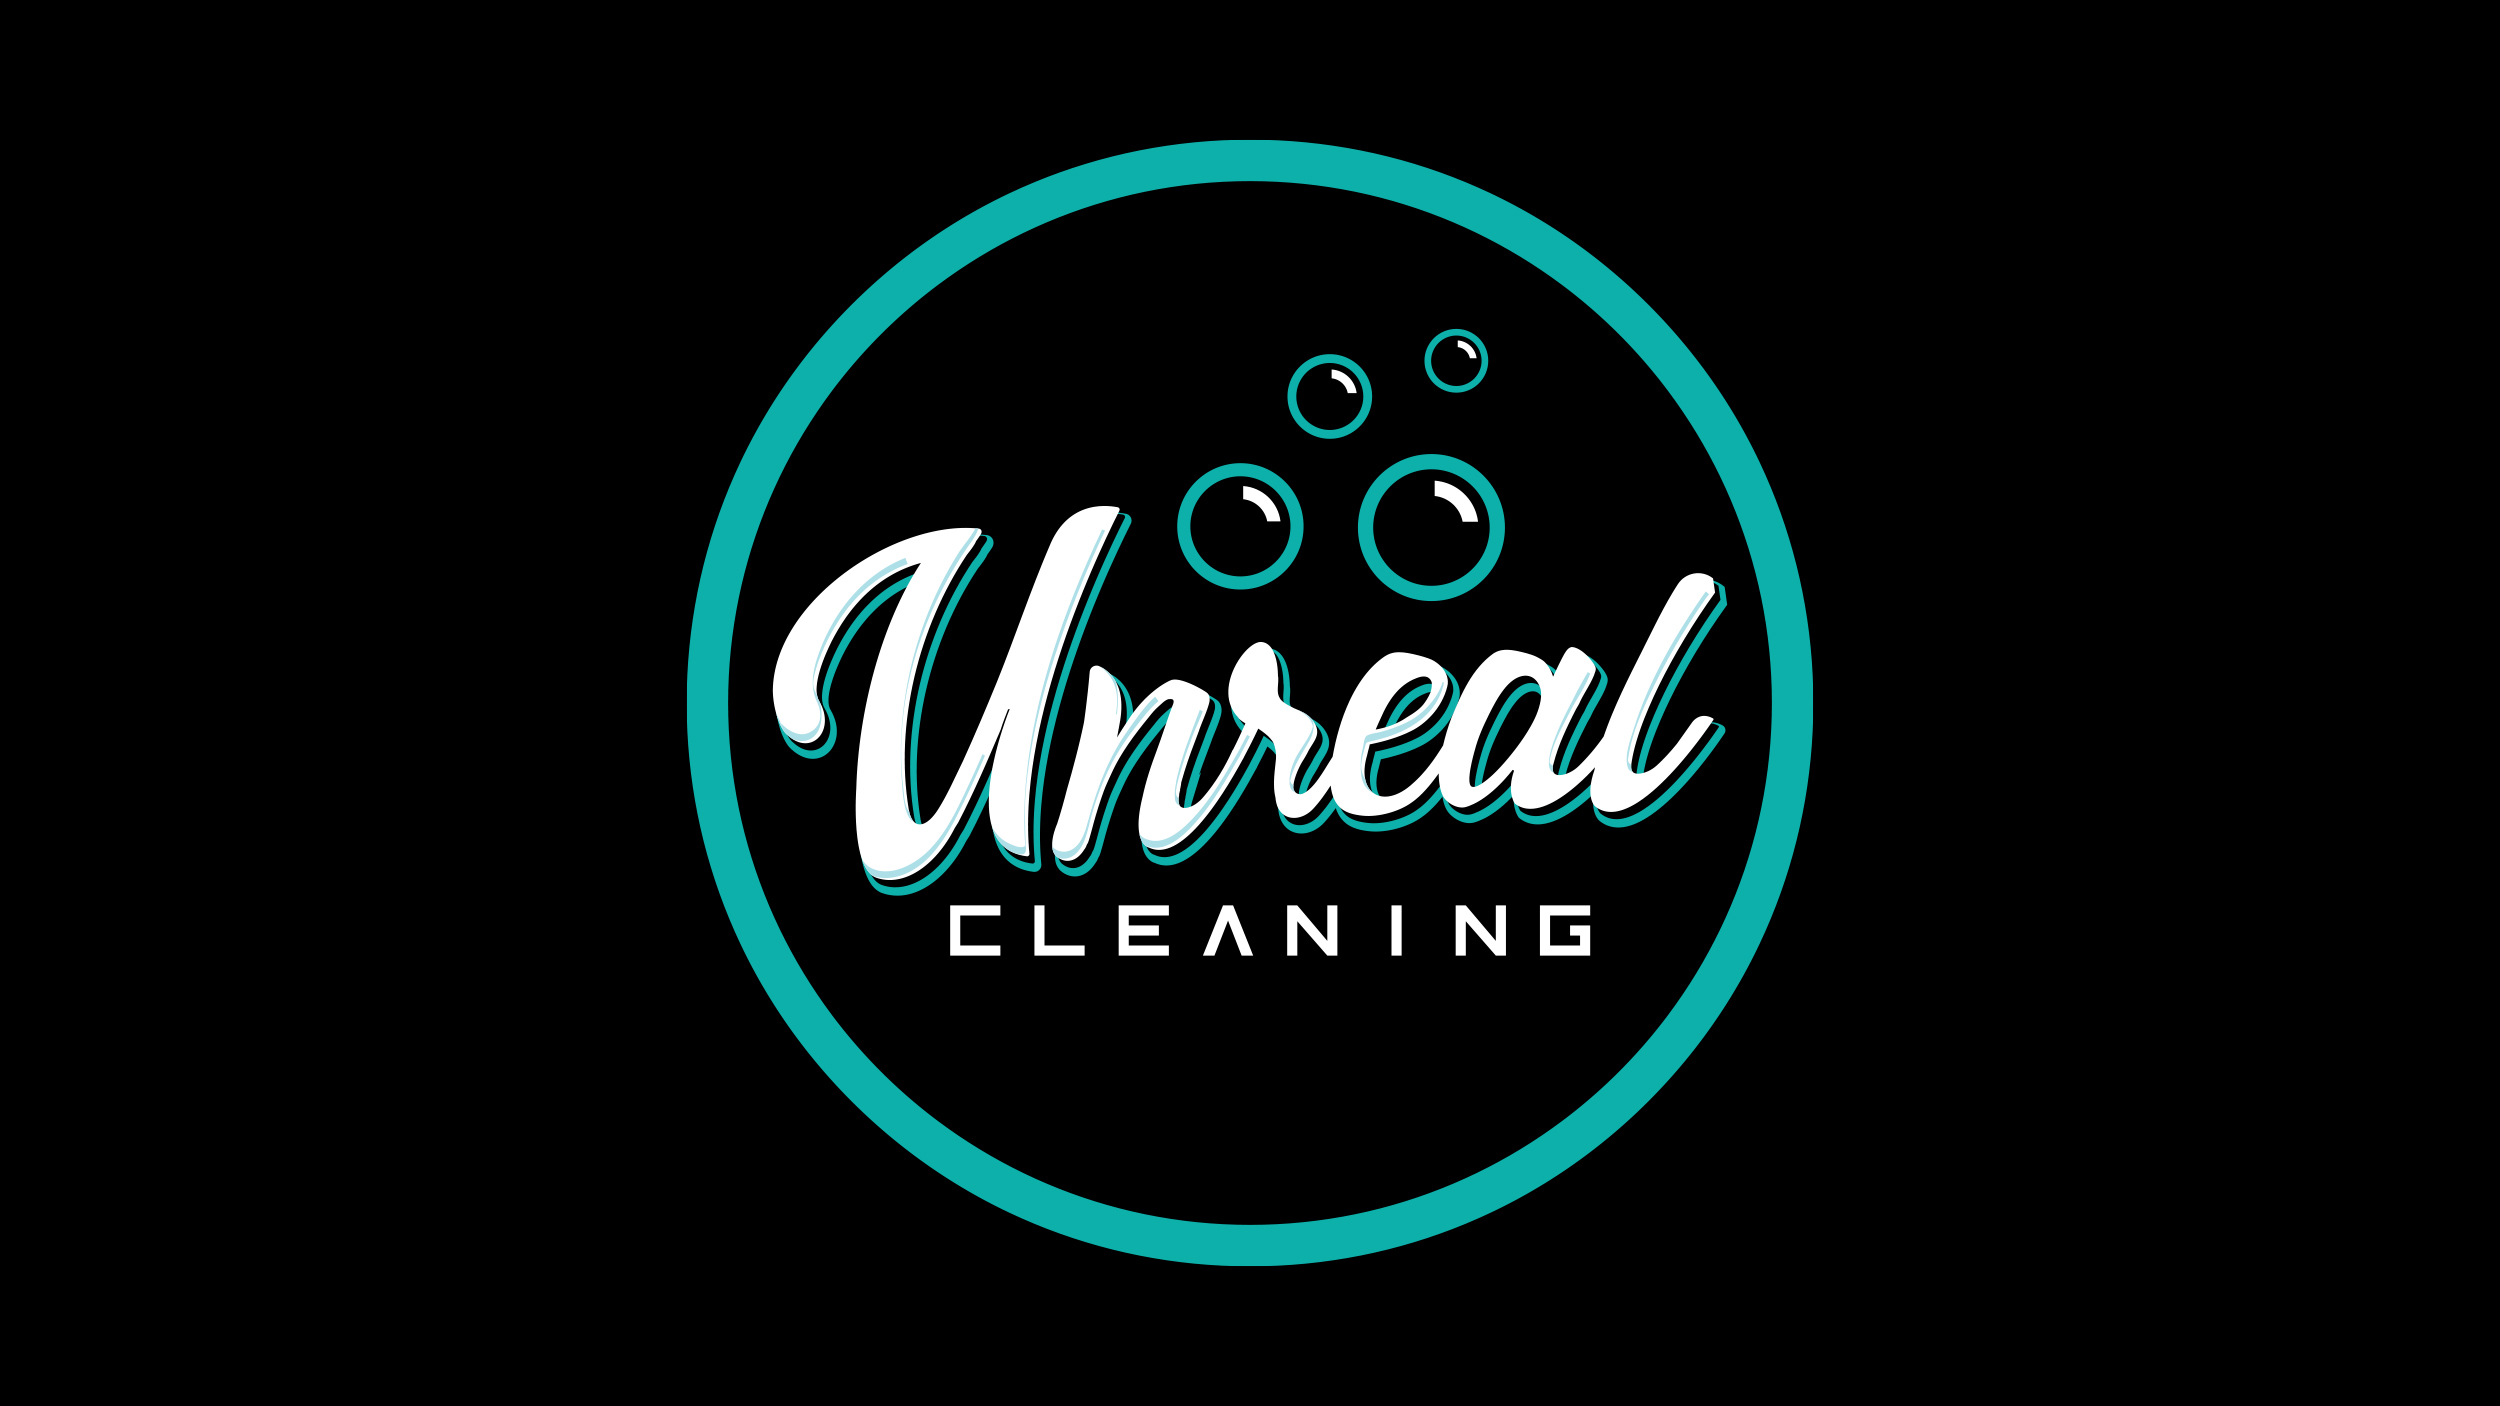 Unreal Cleaning Logo   Copyright © Afro Boy Productions. All rights reserved.